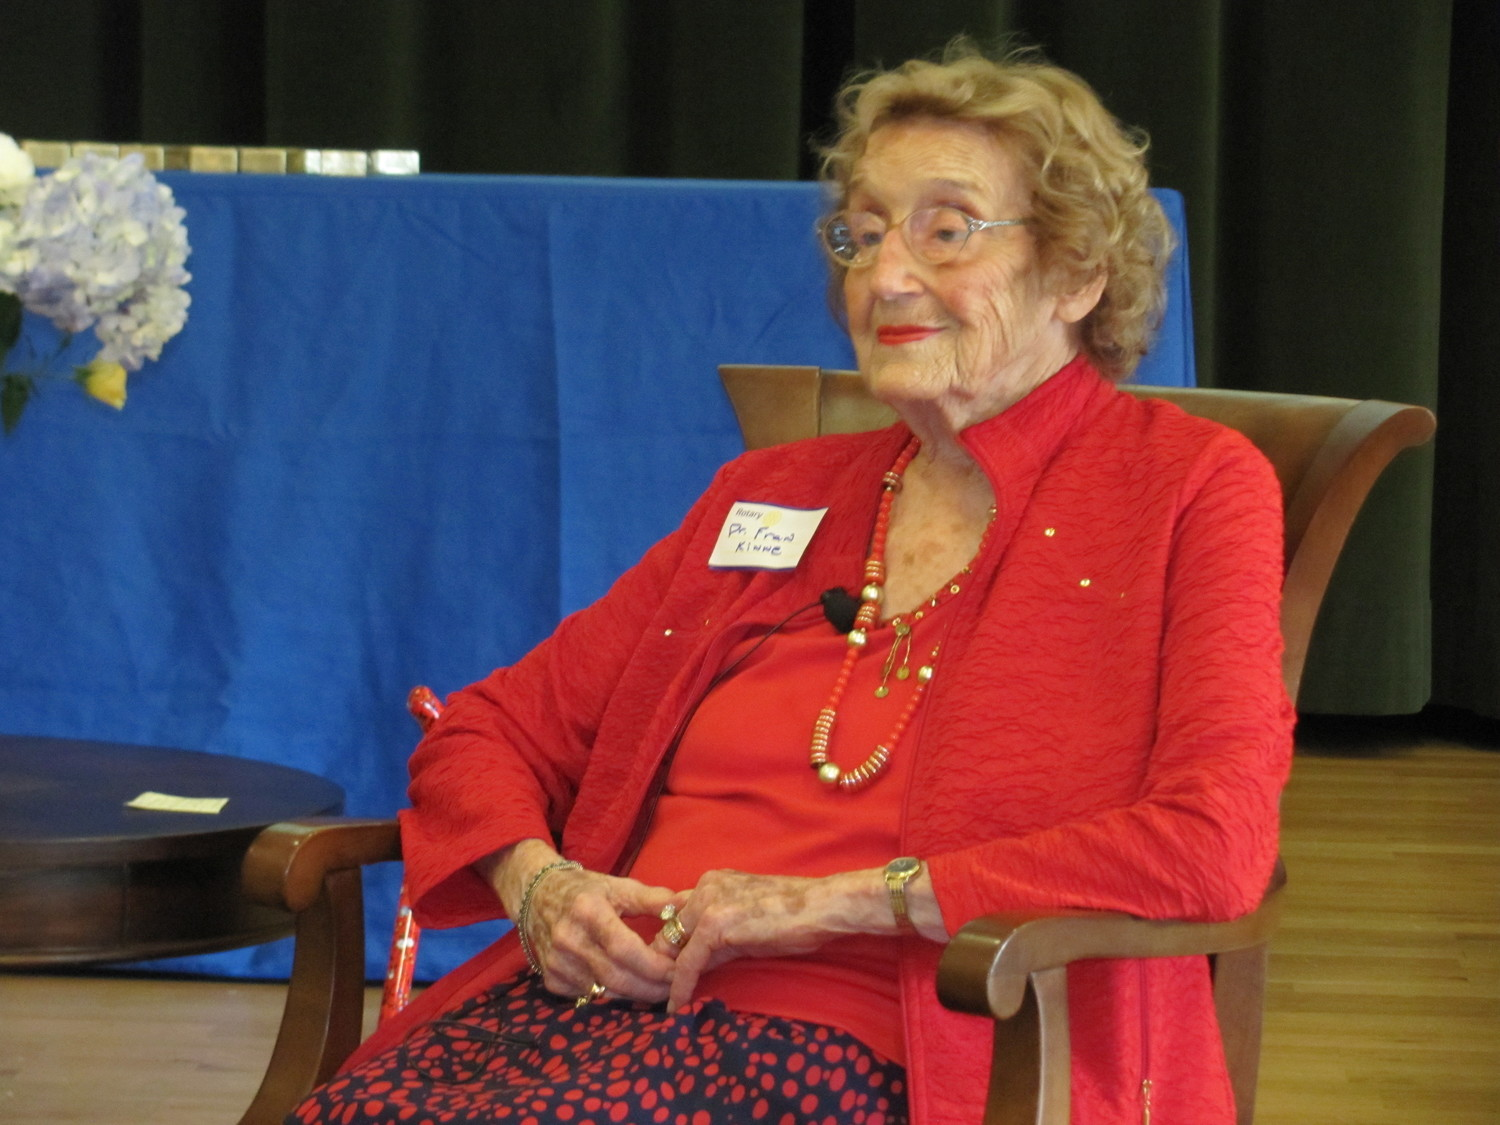 Dr. Frances Kinne received a Lifetime Achievement Award at the event for her pioneering efforts within Rotary and society as a whole.